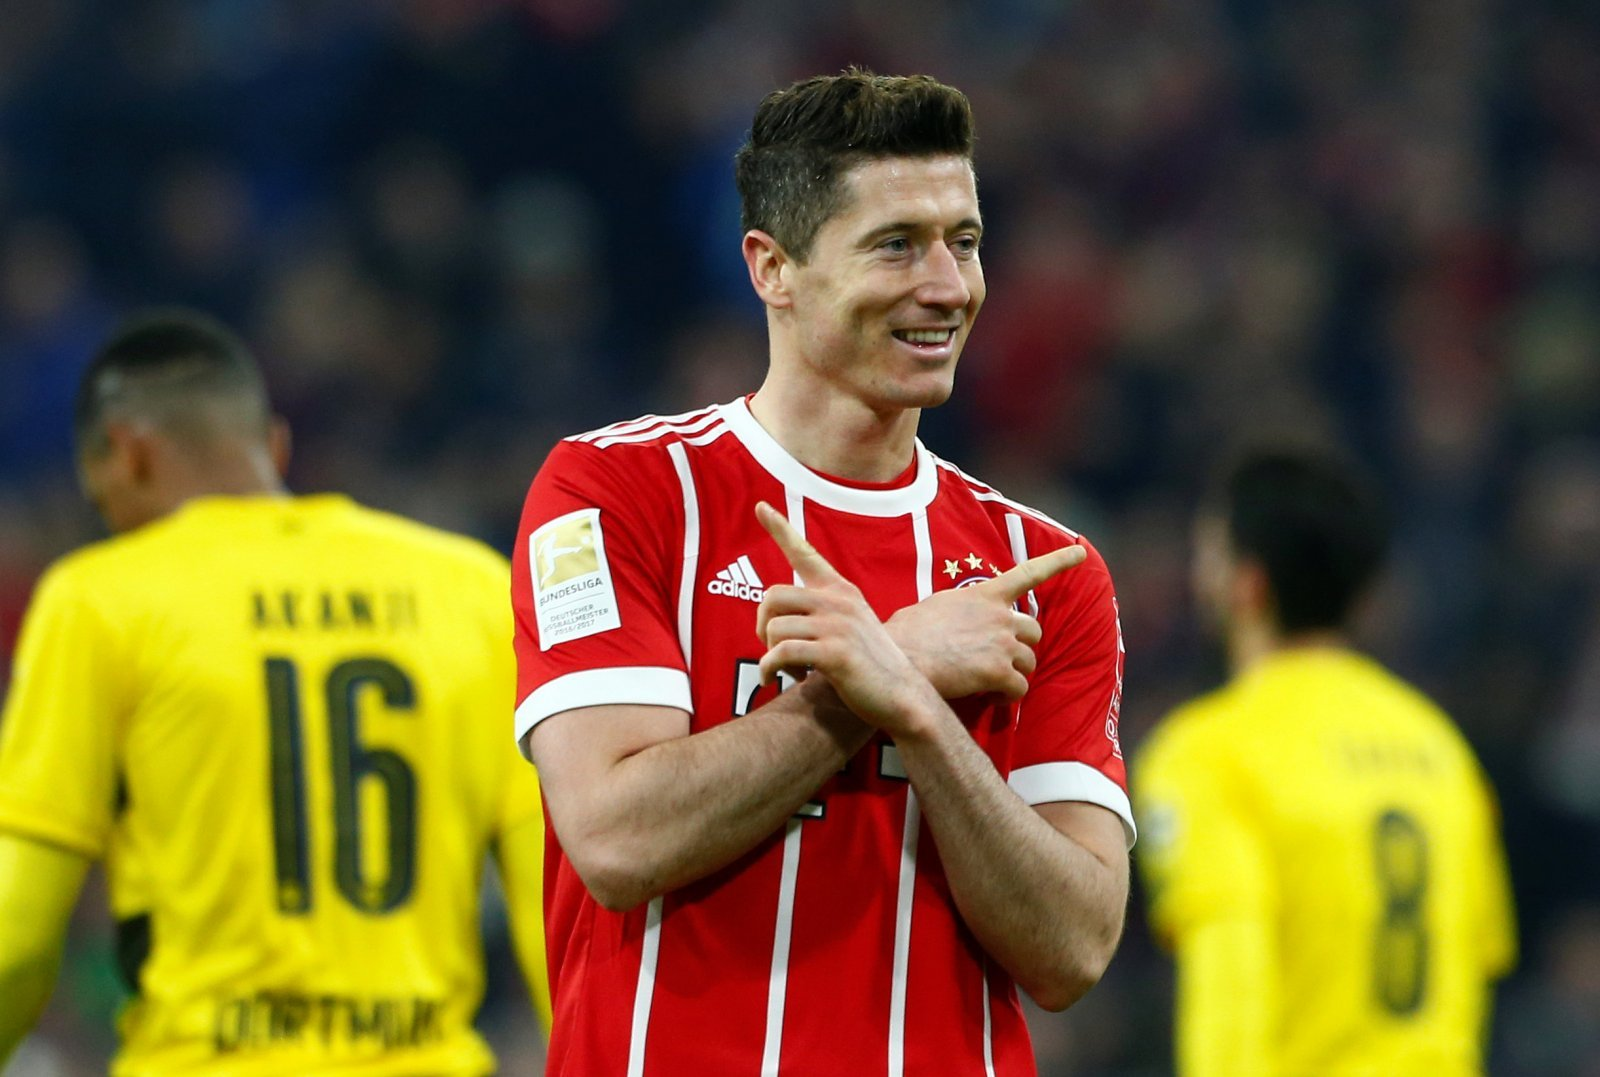 Lewandowski to Manchester United would be a terrible move by Mourinho